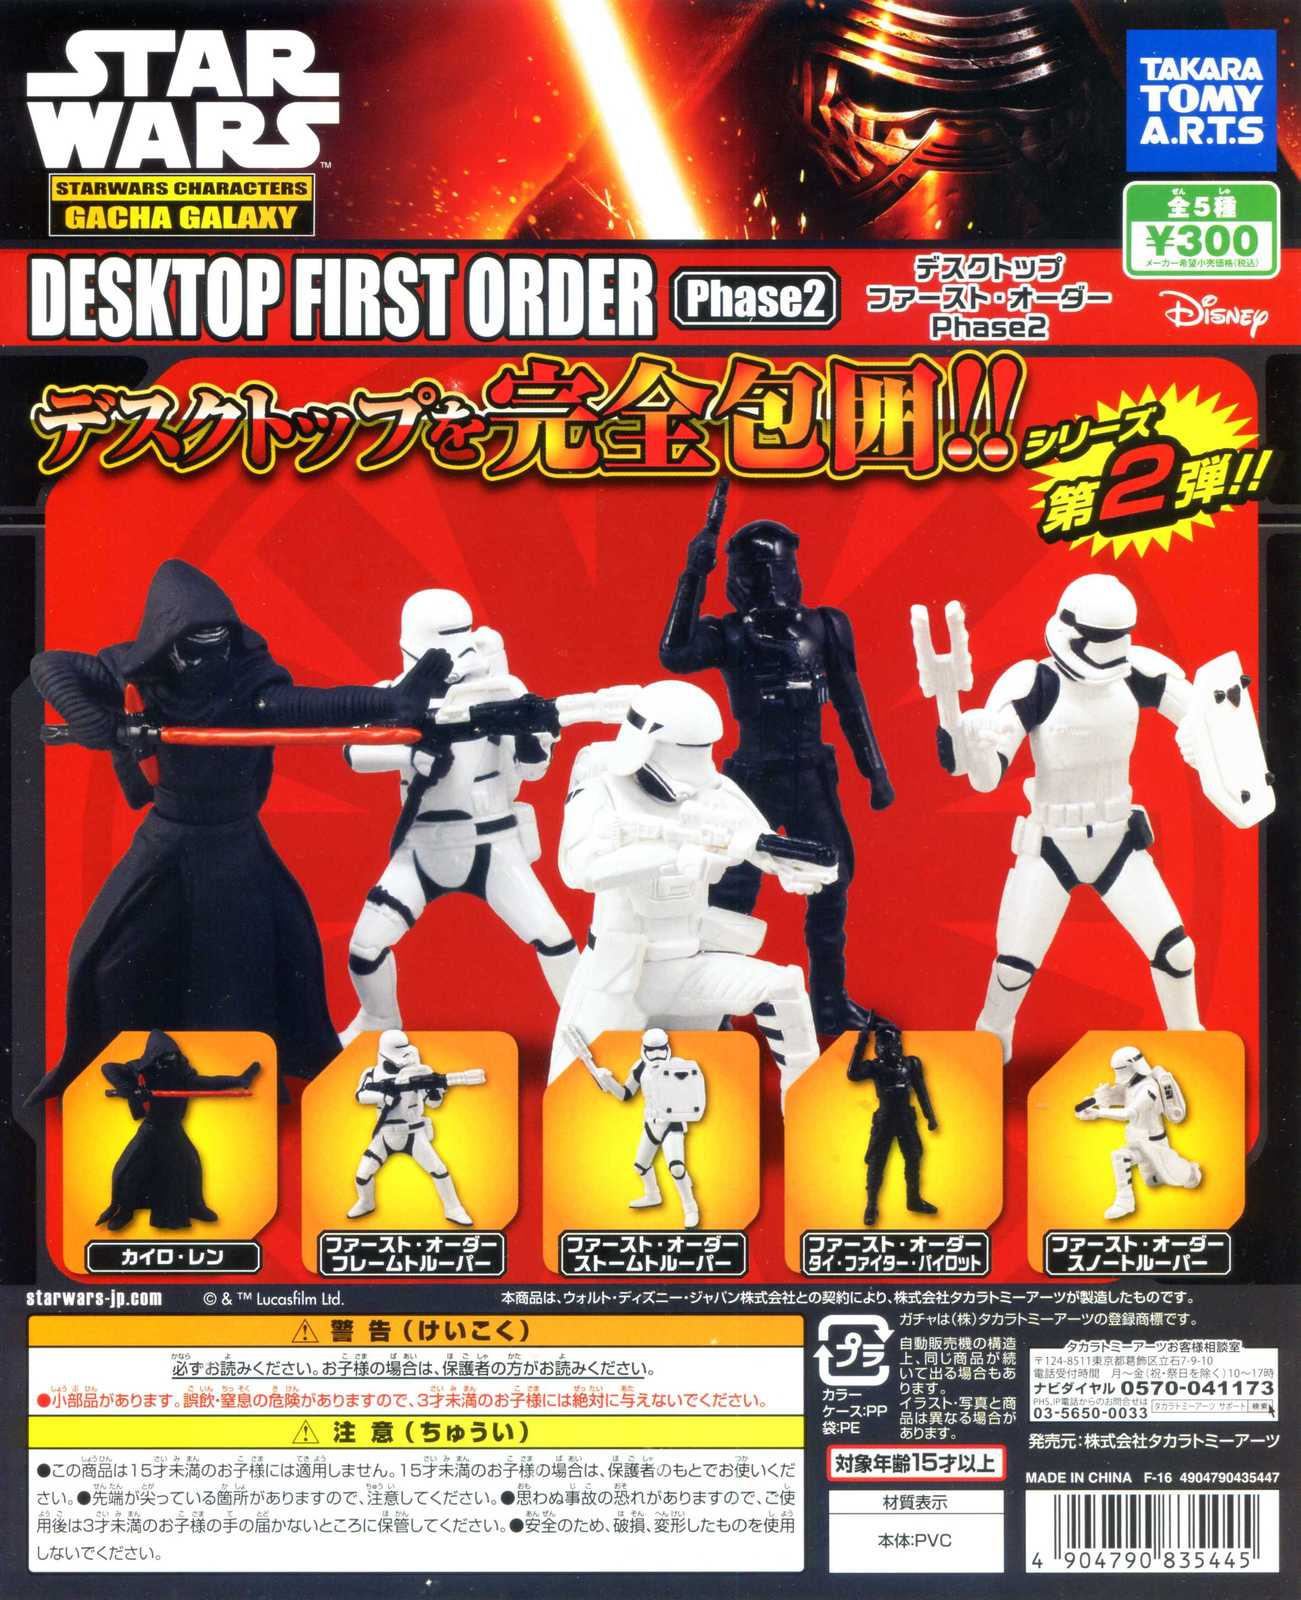 ARTS STAR WARS Characters GACHA GALAXY DESKTOP FIRST ORDER Phase 2 Full Set 5pc